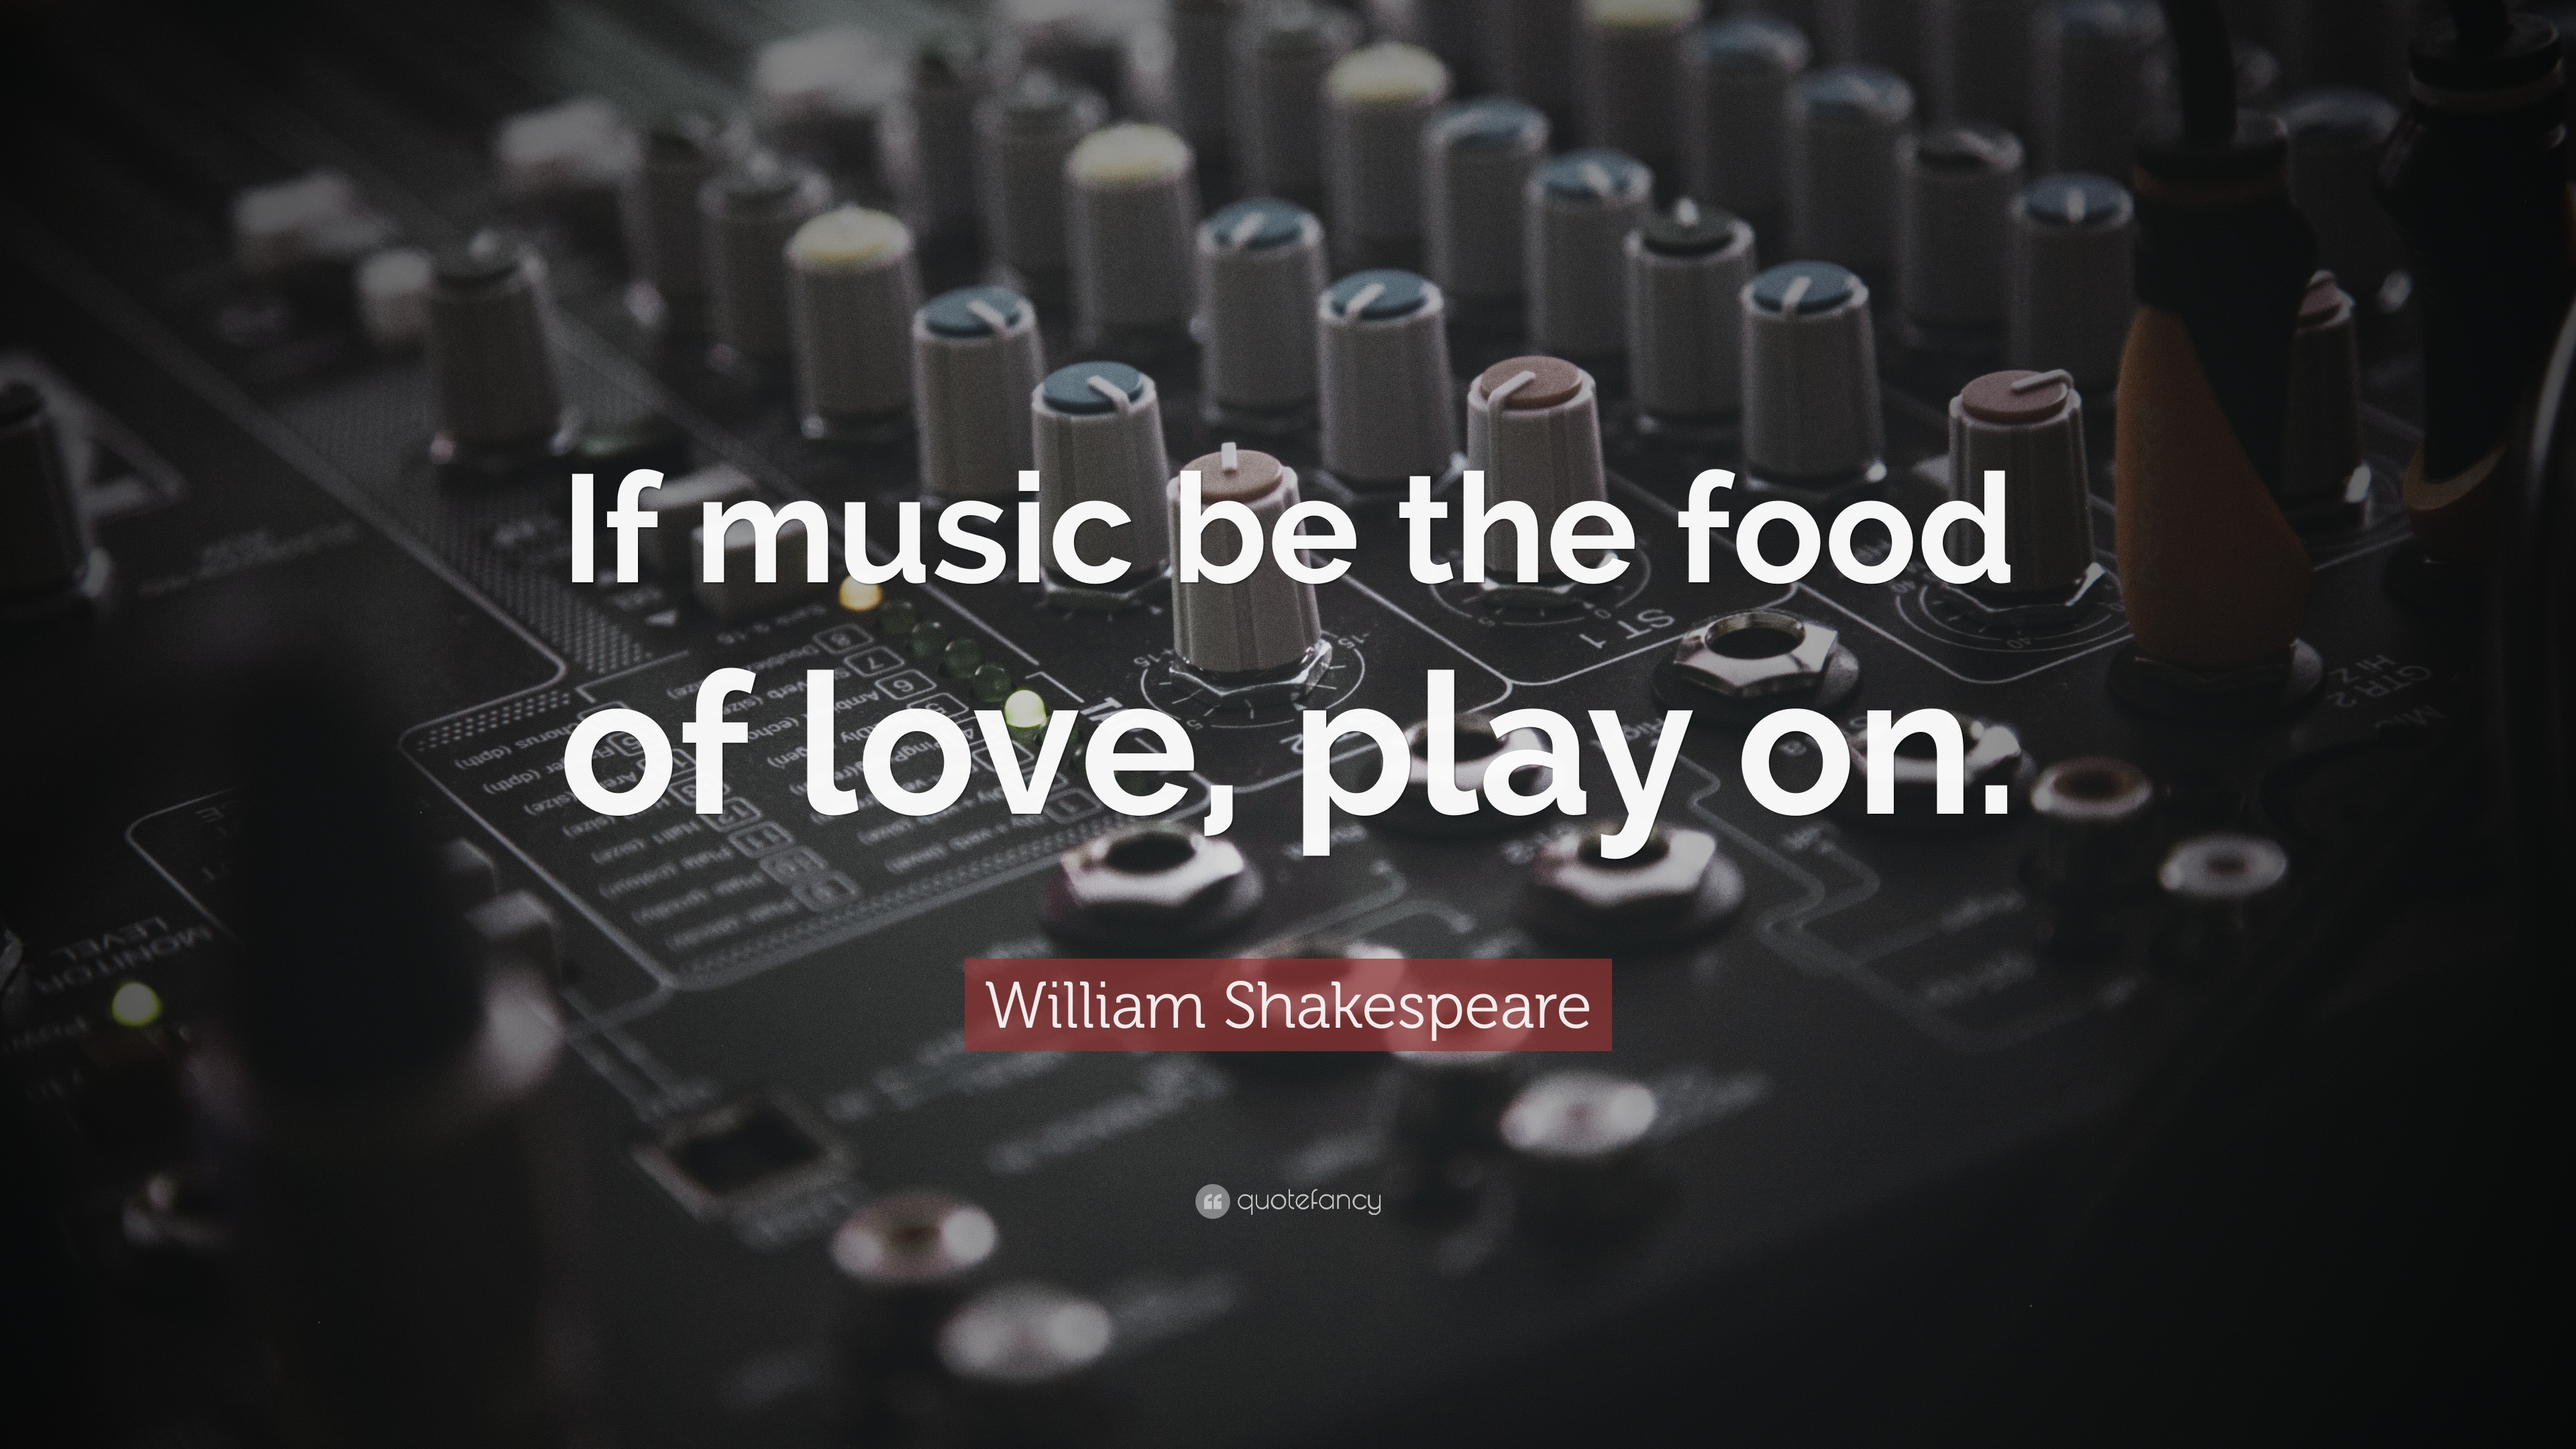 Amazing Wallpaper Music Food - 28268-William-Shakespeare-Quote-If-music-be-the-food-of-love-play-on  Graphic_839138.jpg